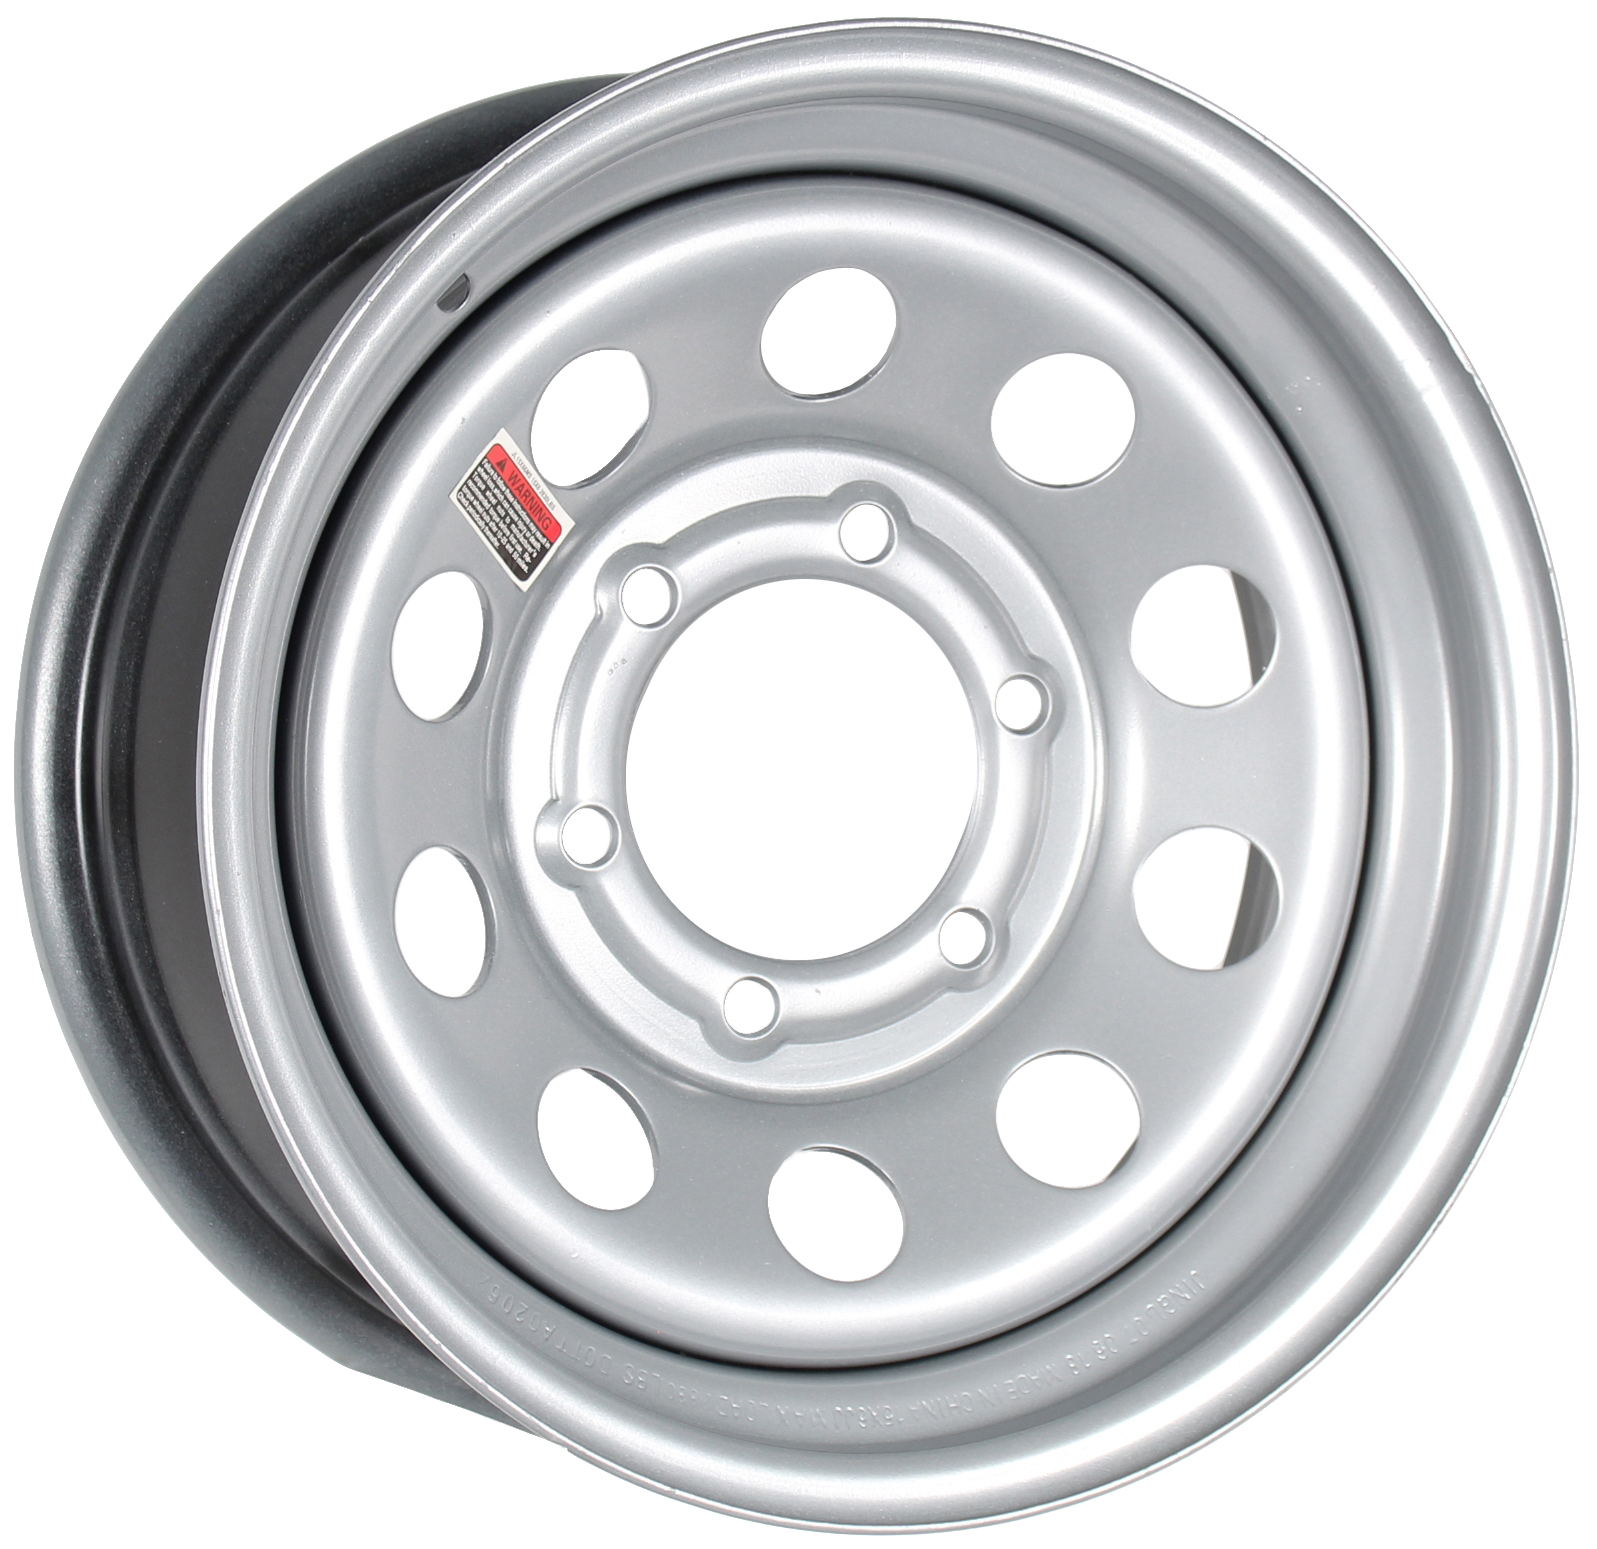 15x6 6-Lug Silver Mod Steel Trailer Wheel Image